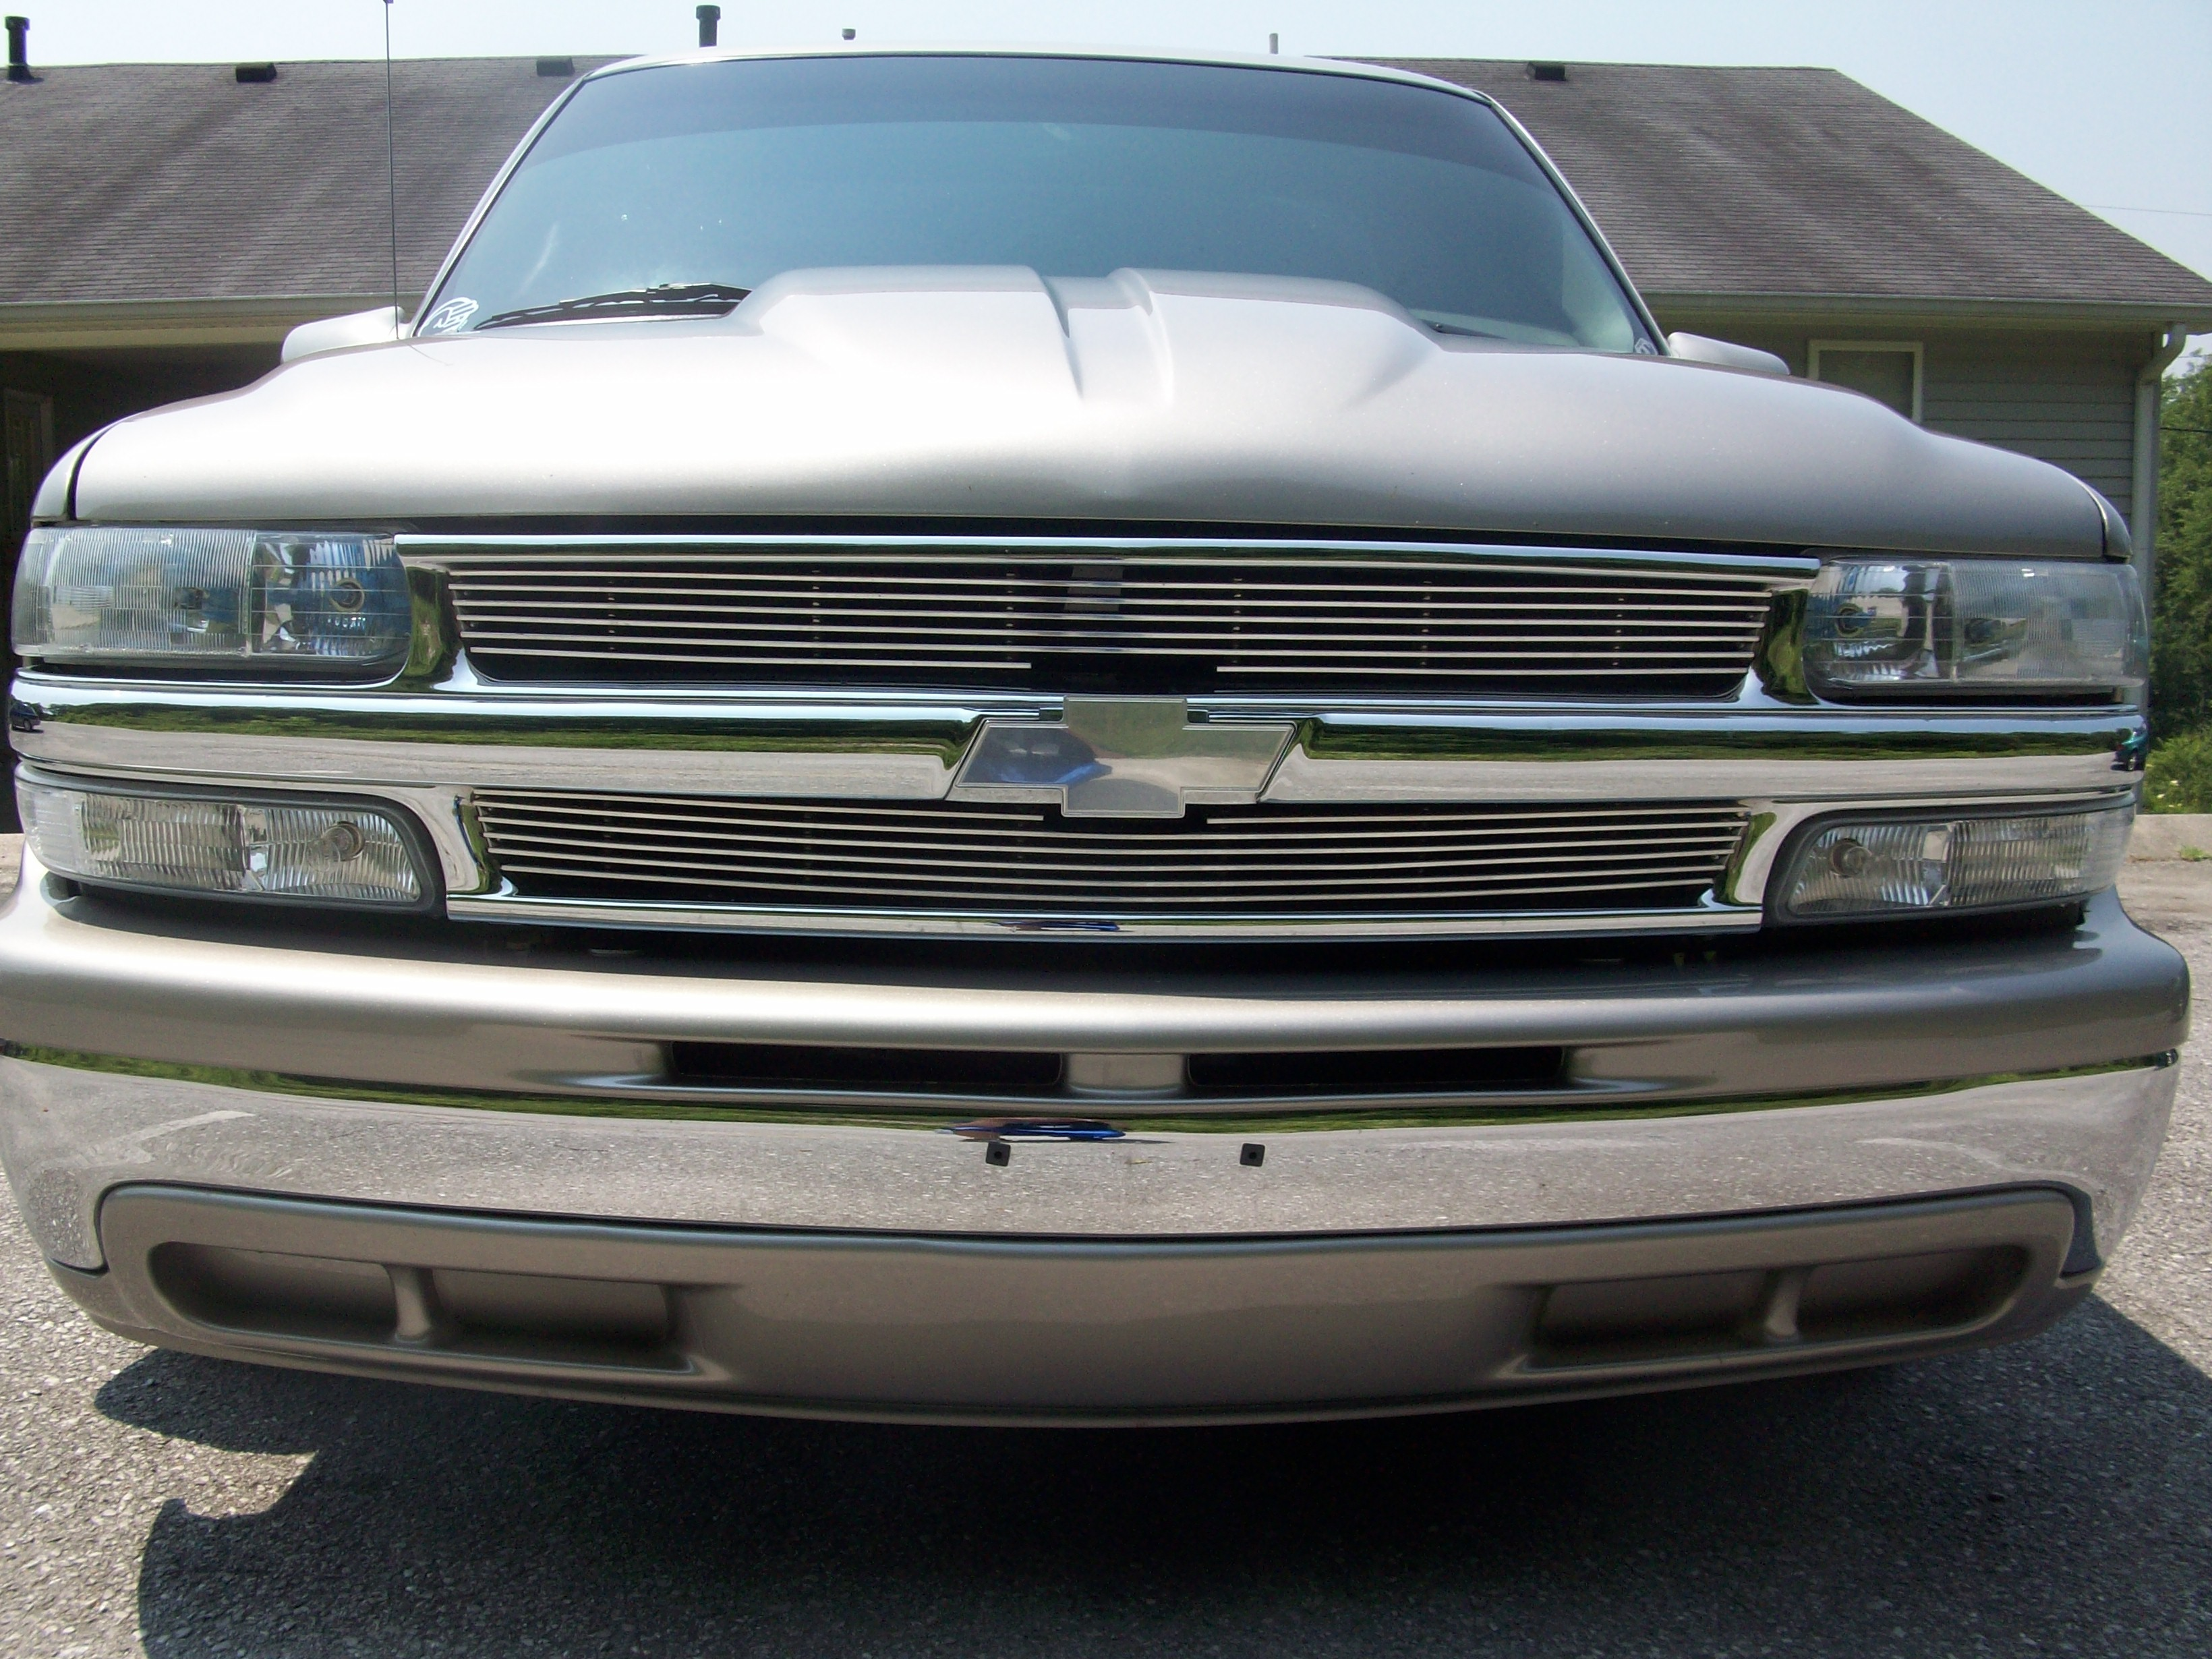 rigsby10 2000 chevrolet silverado 1500 regular cab specs photos modification info at cardomain. Black Bedroom Furniture Sets. Home Design Ideas